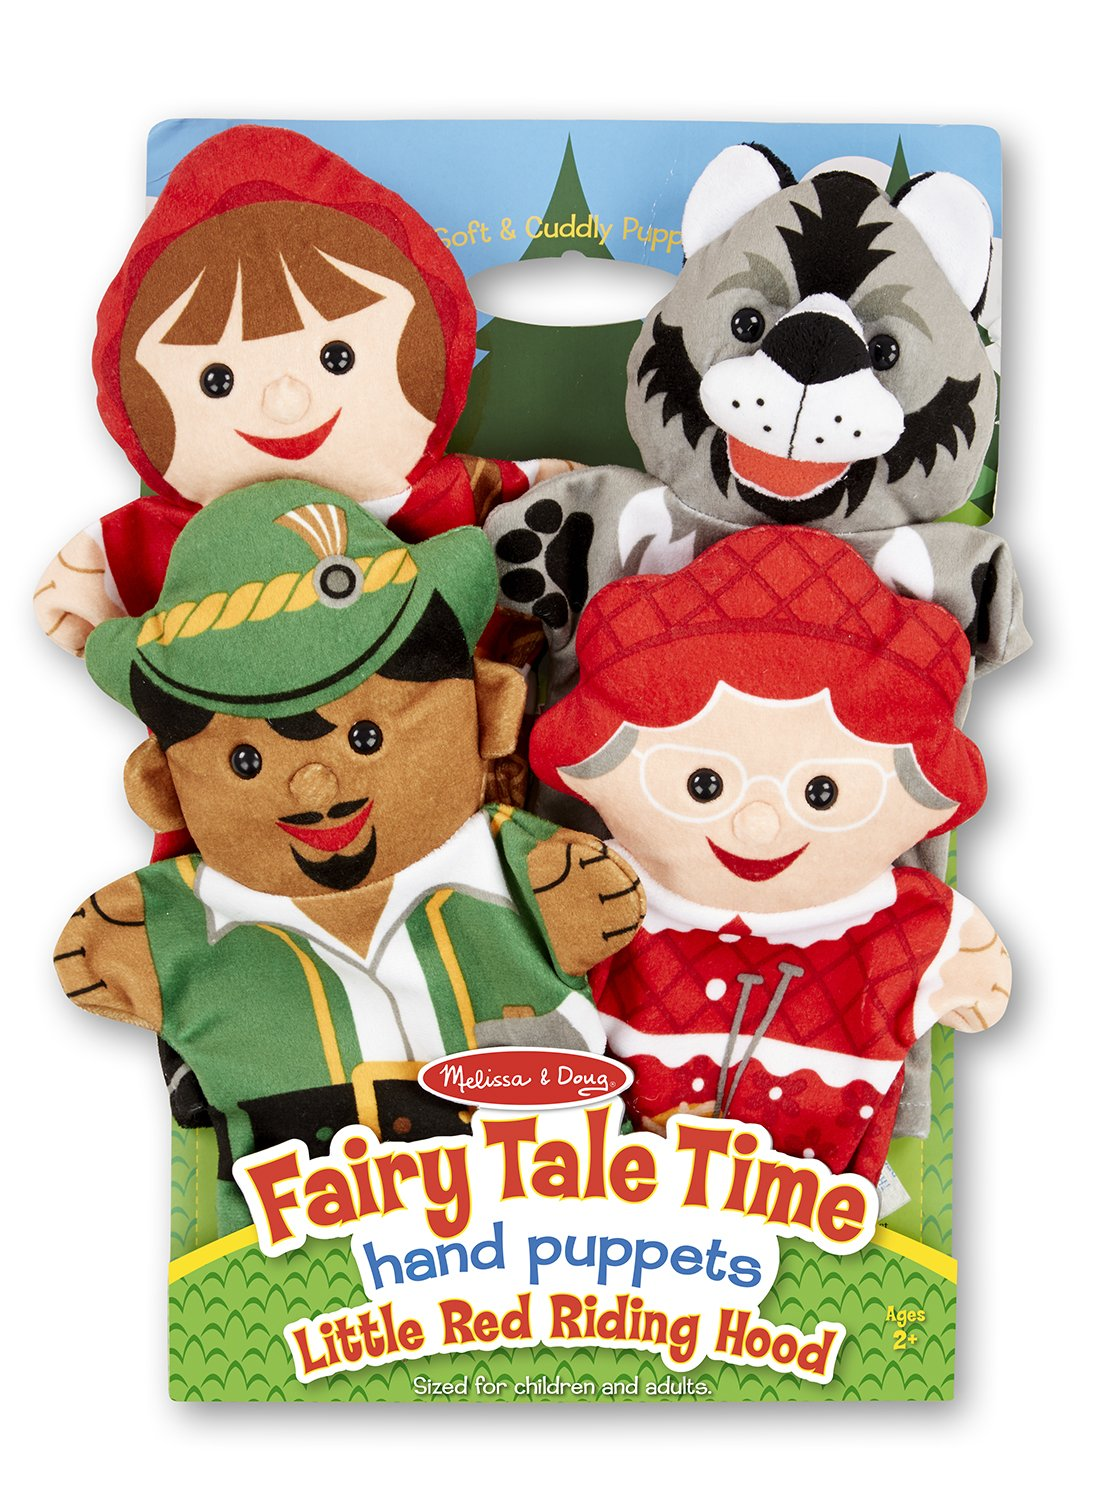 Beach Large 4 Hand Puppets Set Little Red Riding Hood Story Pack